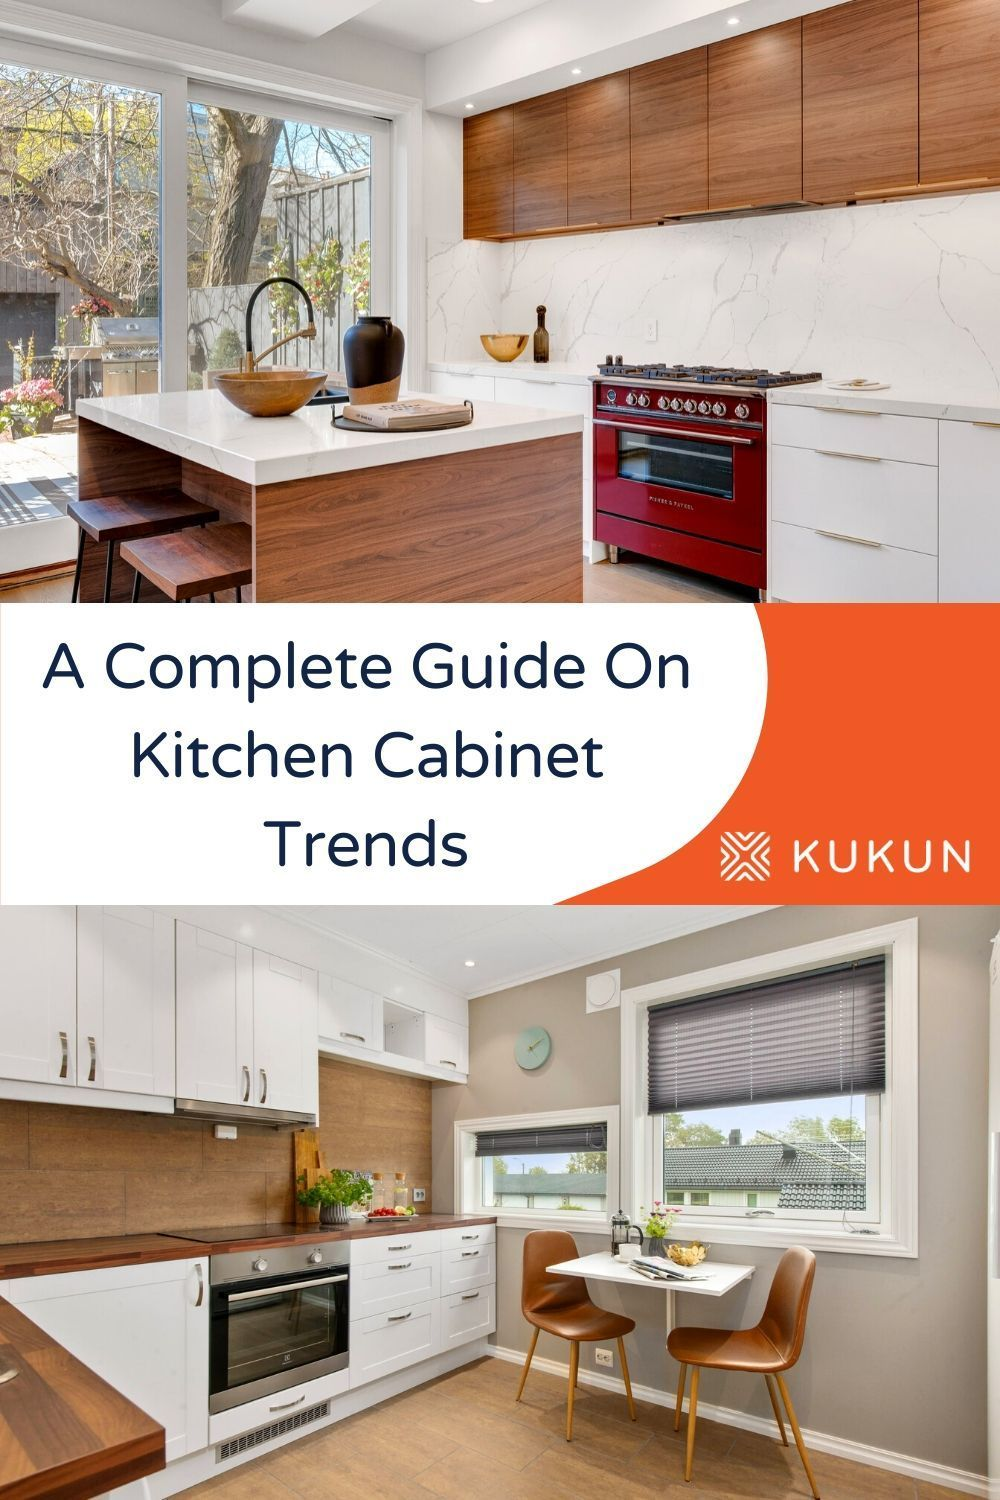 Kitchen Cabinet Trends A Complete Guide For You In 2020 Kitchen Cabinets Kitchen Cabinet Trends Beautiful Kitchen Cabinets